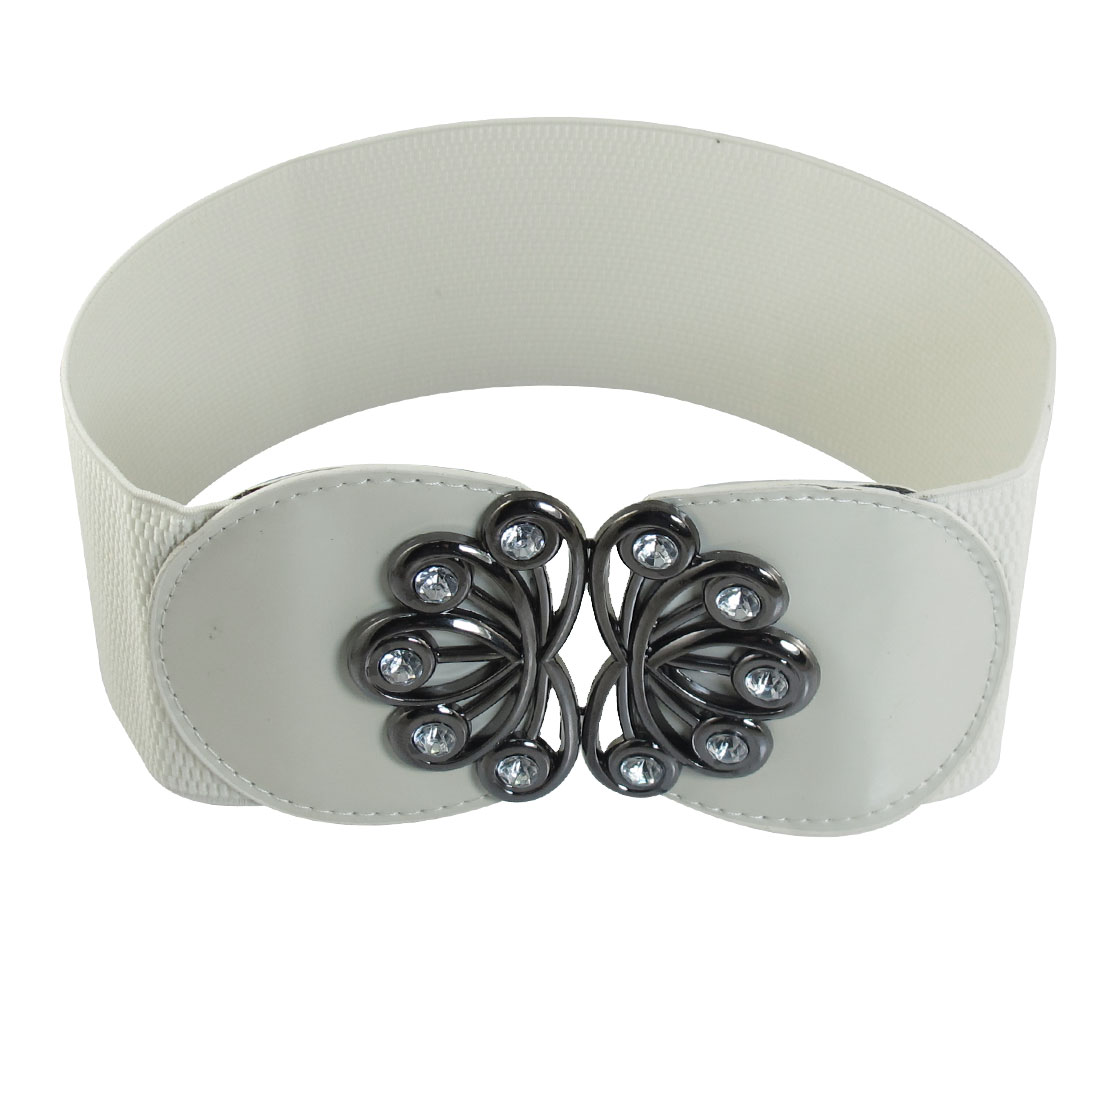 Crystal Detailing Metal Buckle Elastic Waist Belt Band White for Women